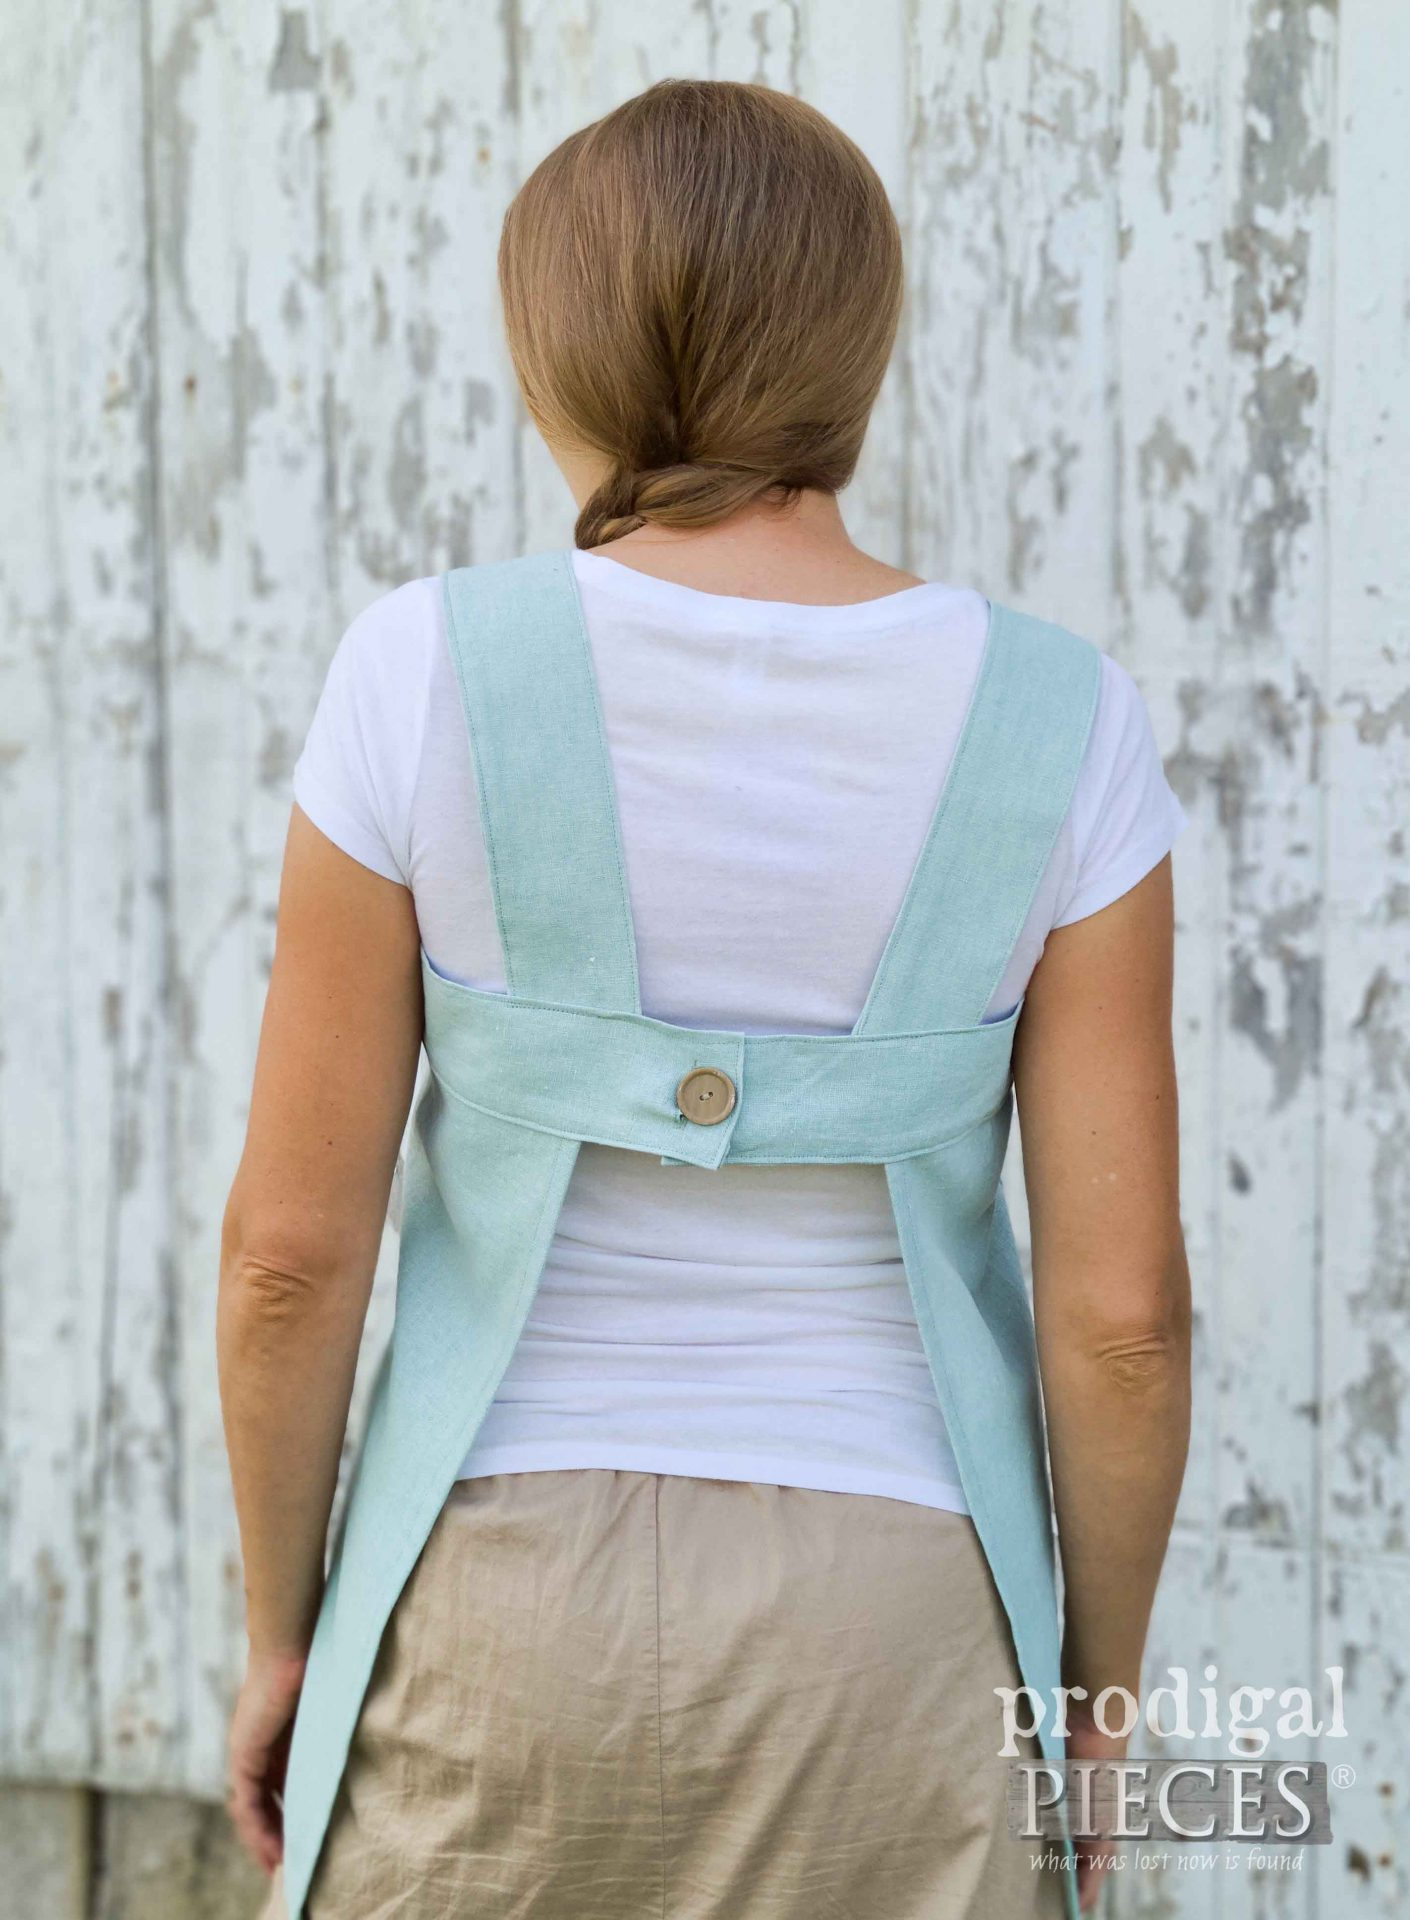 Handmade Linen Smock Back with Button Closure by Larissa of Prodigal Pieces | prodigalpieces.com #prodigalpieces #handmade #sewing #fashion #diy #women